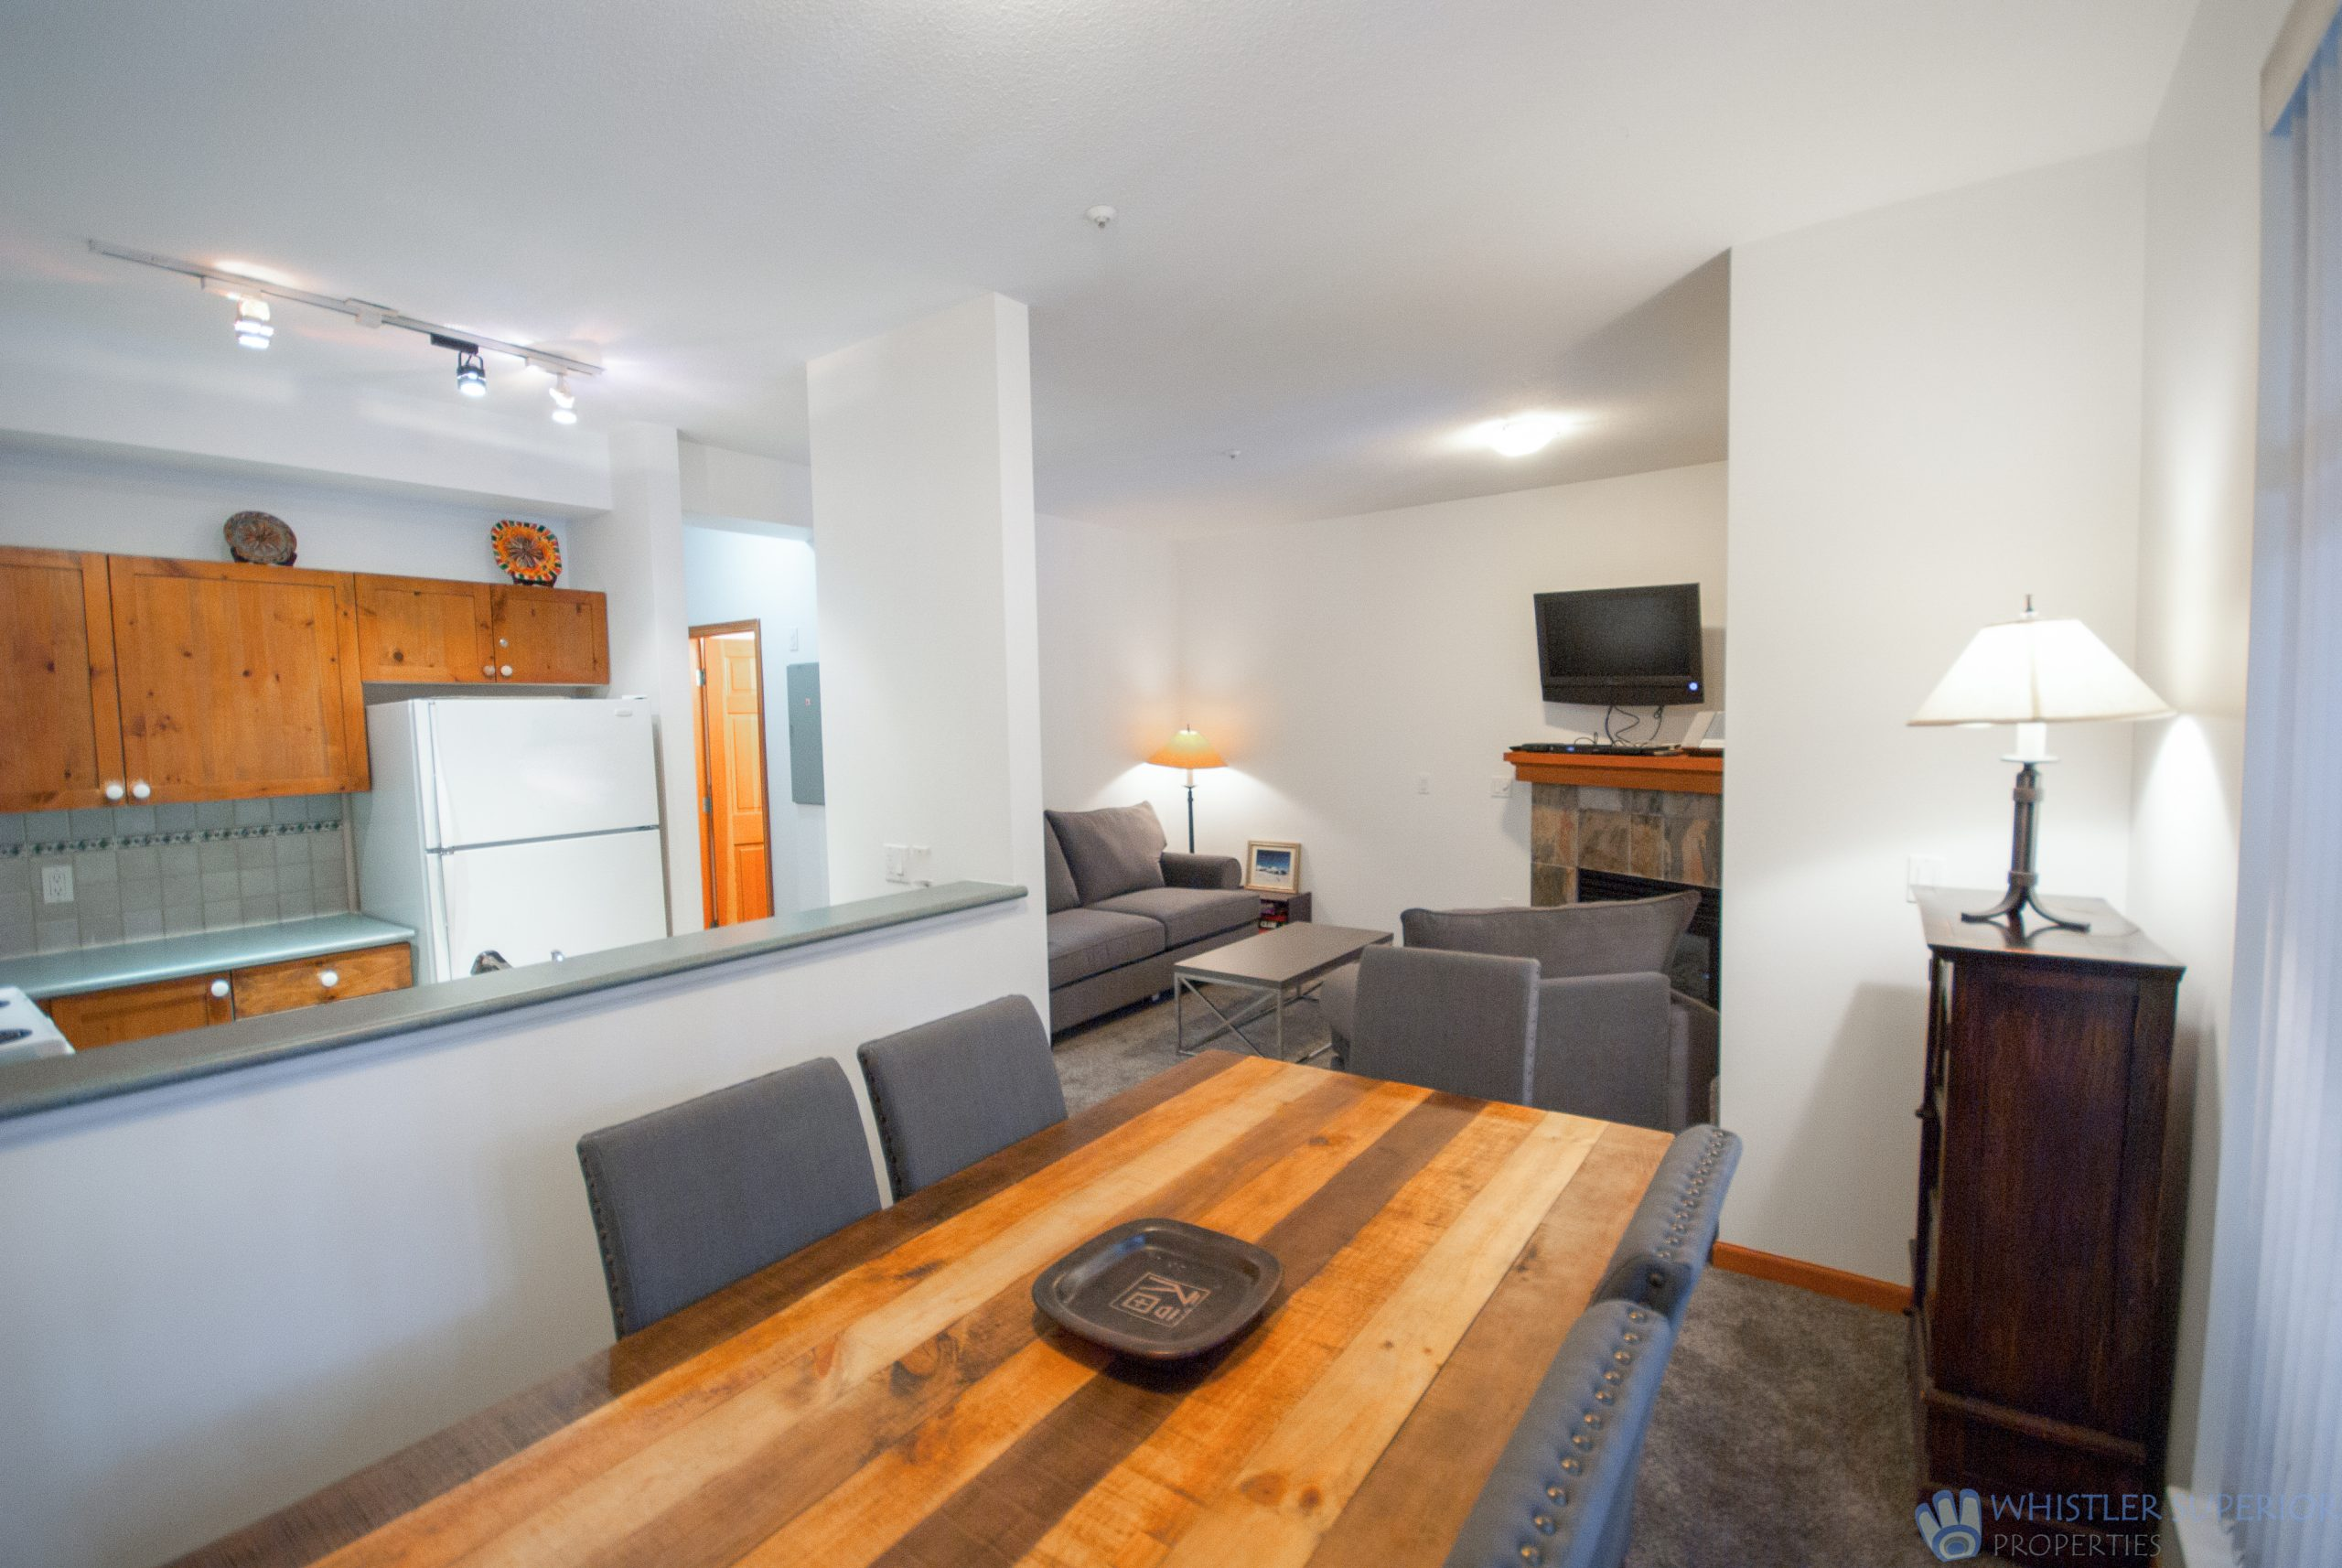 Whistler Accommodations - Two Bedroom Rentals